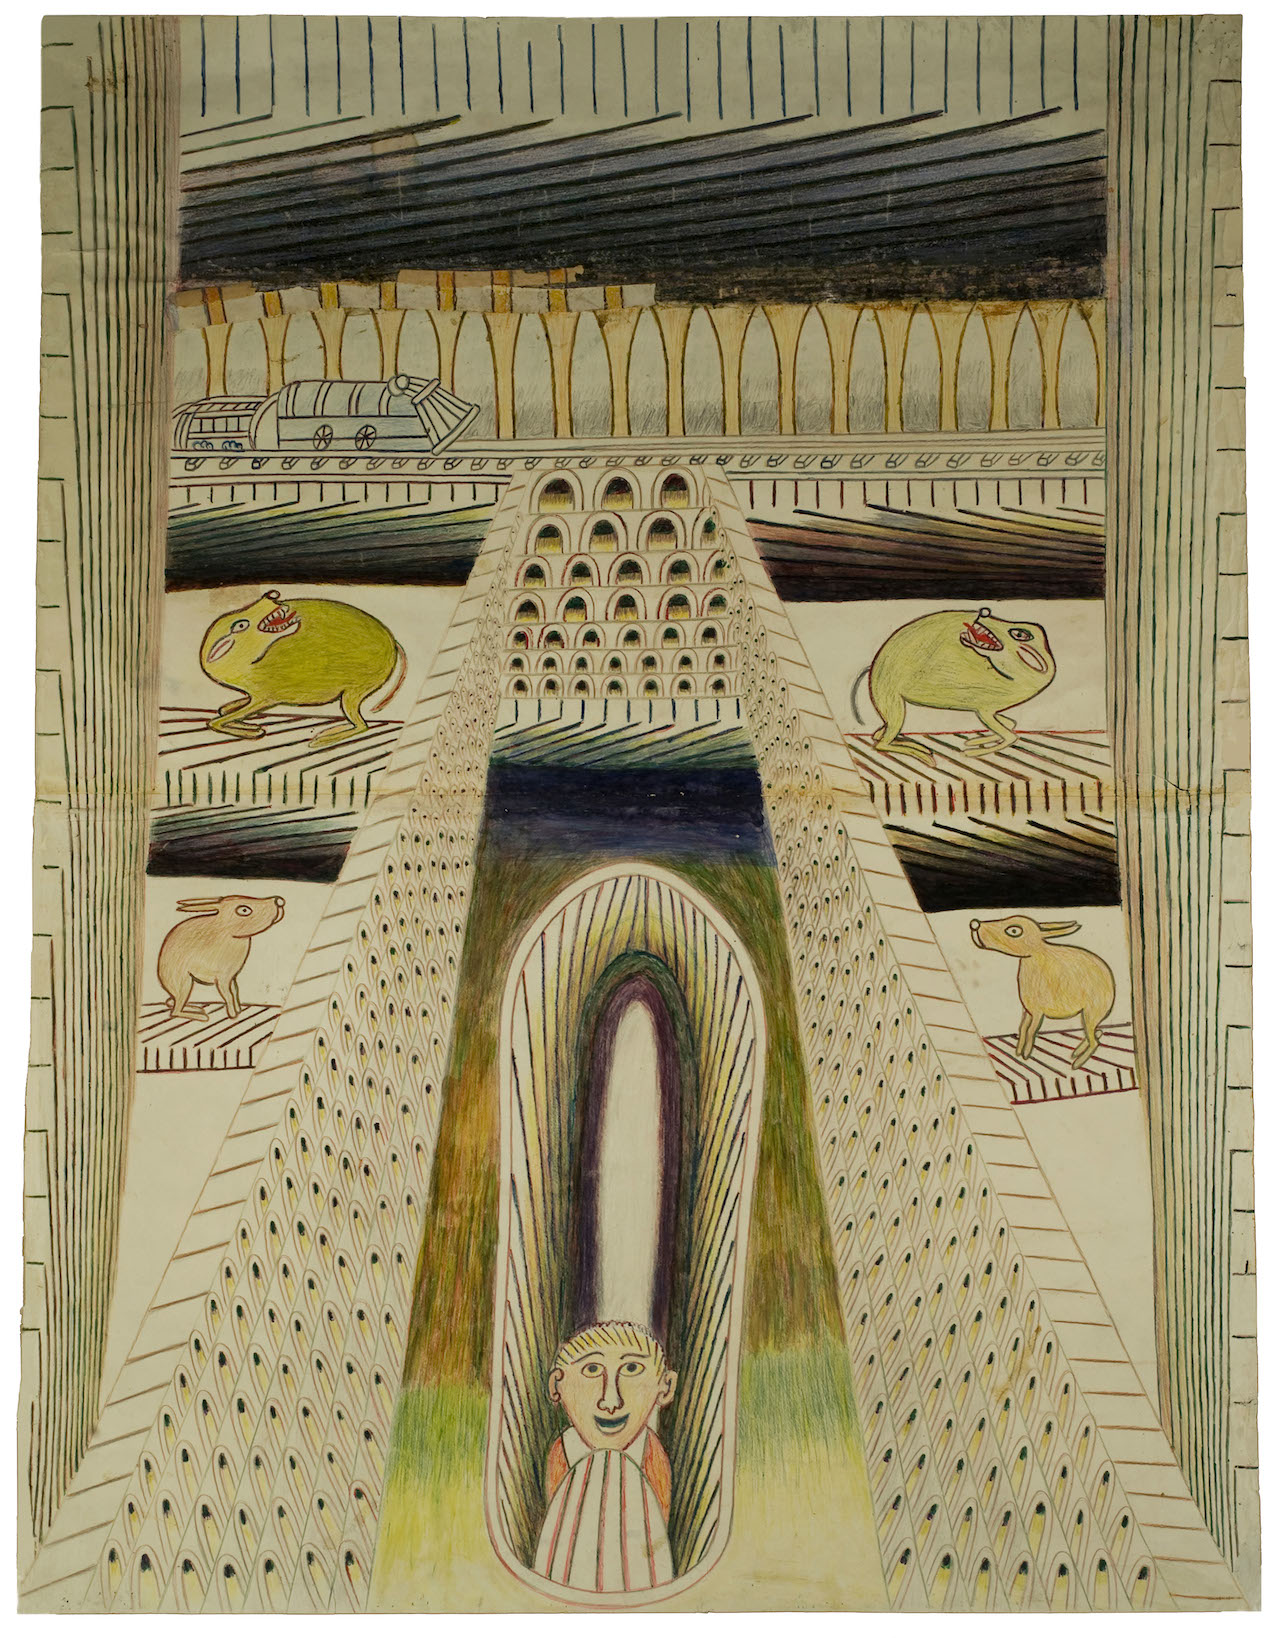 Untitled (Courtyard with Man and Animals) c. 1950-55 Graphite, tempera and crayon on paper 47 1/2 x 36 in; 120.7 x 91.4 cm